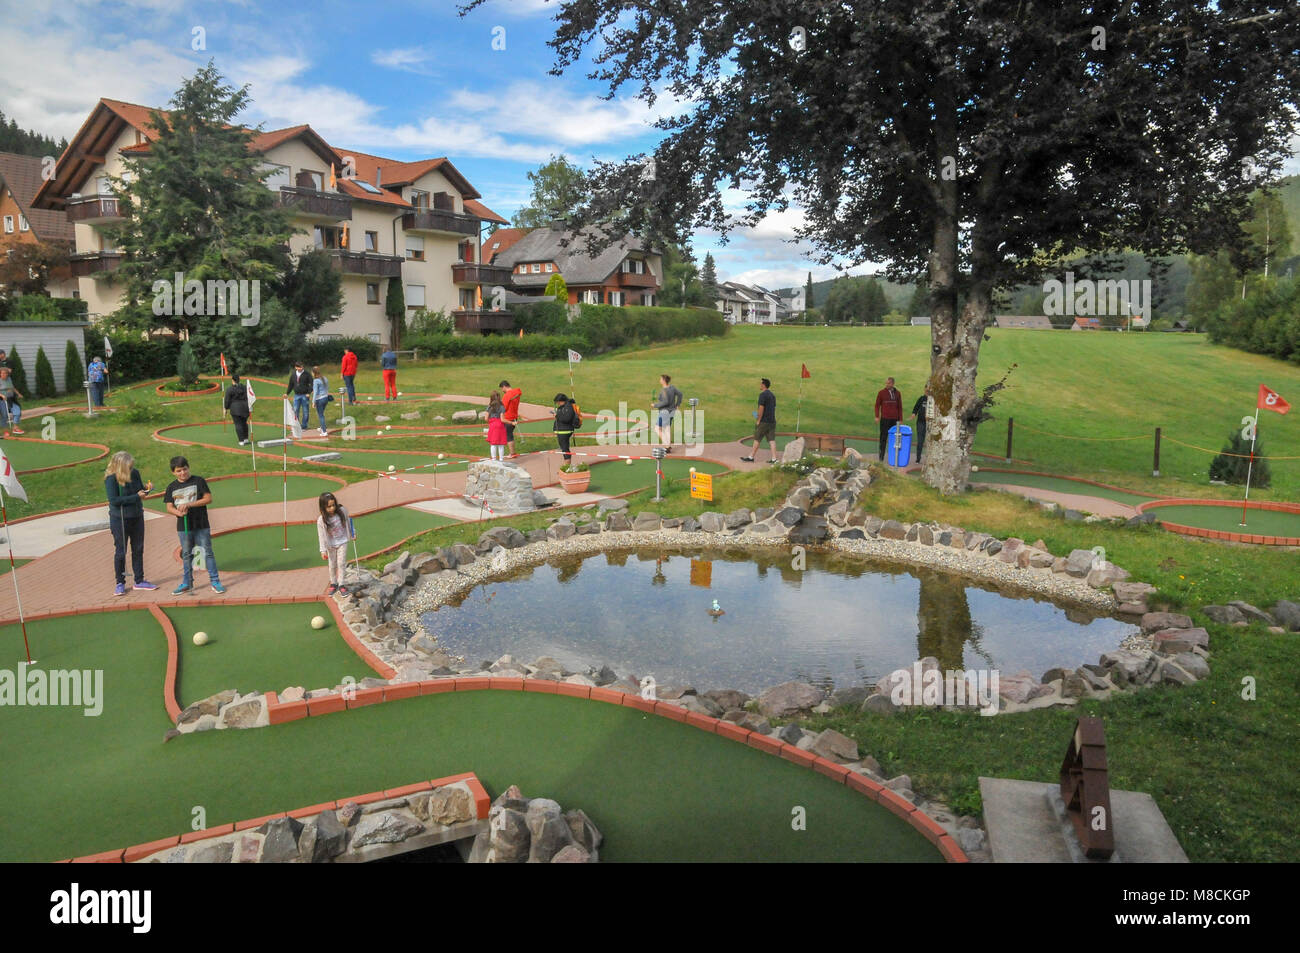 Families putting on a mini golf or putting course Stock Photo